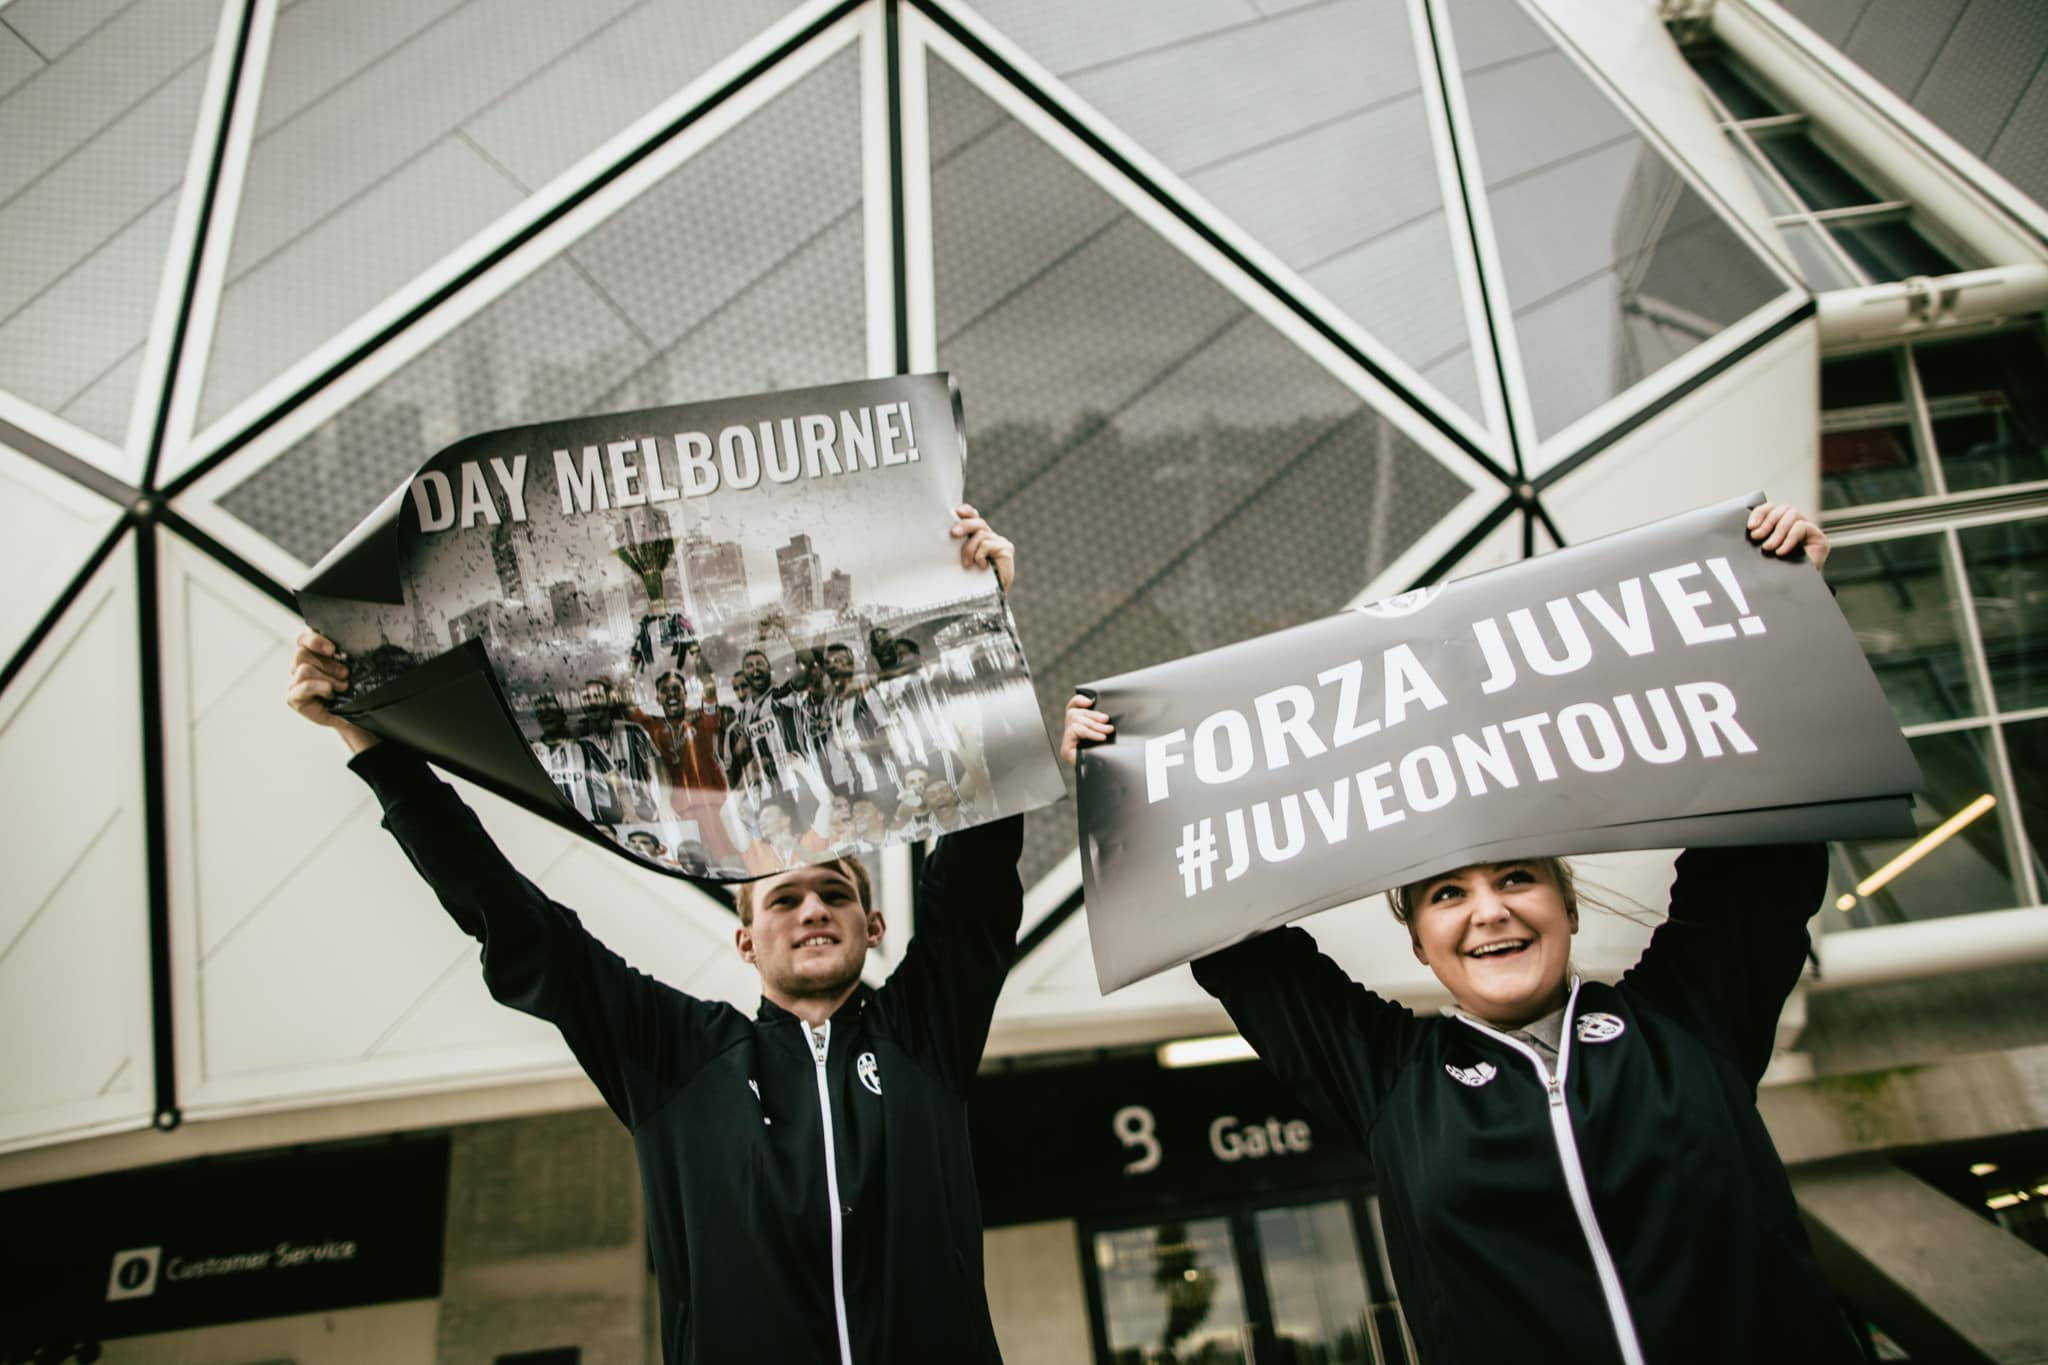 juventus fans in front of stadium with posters